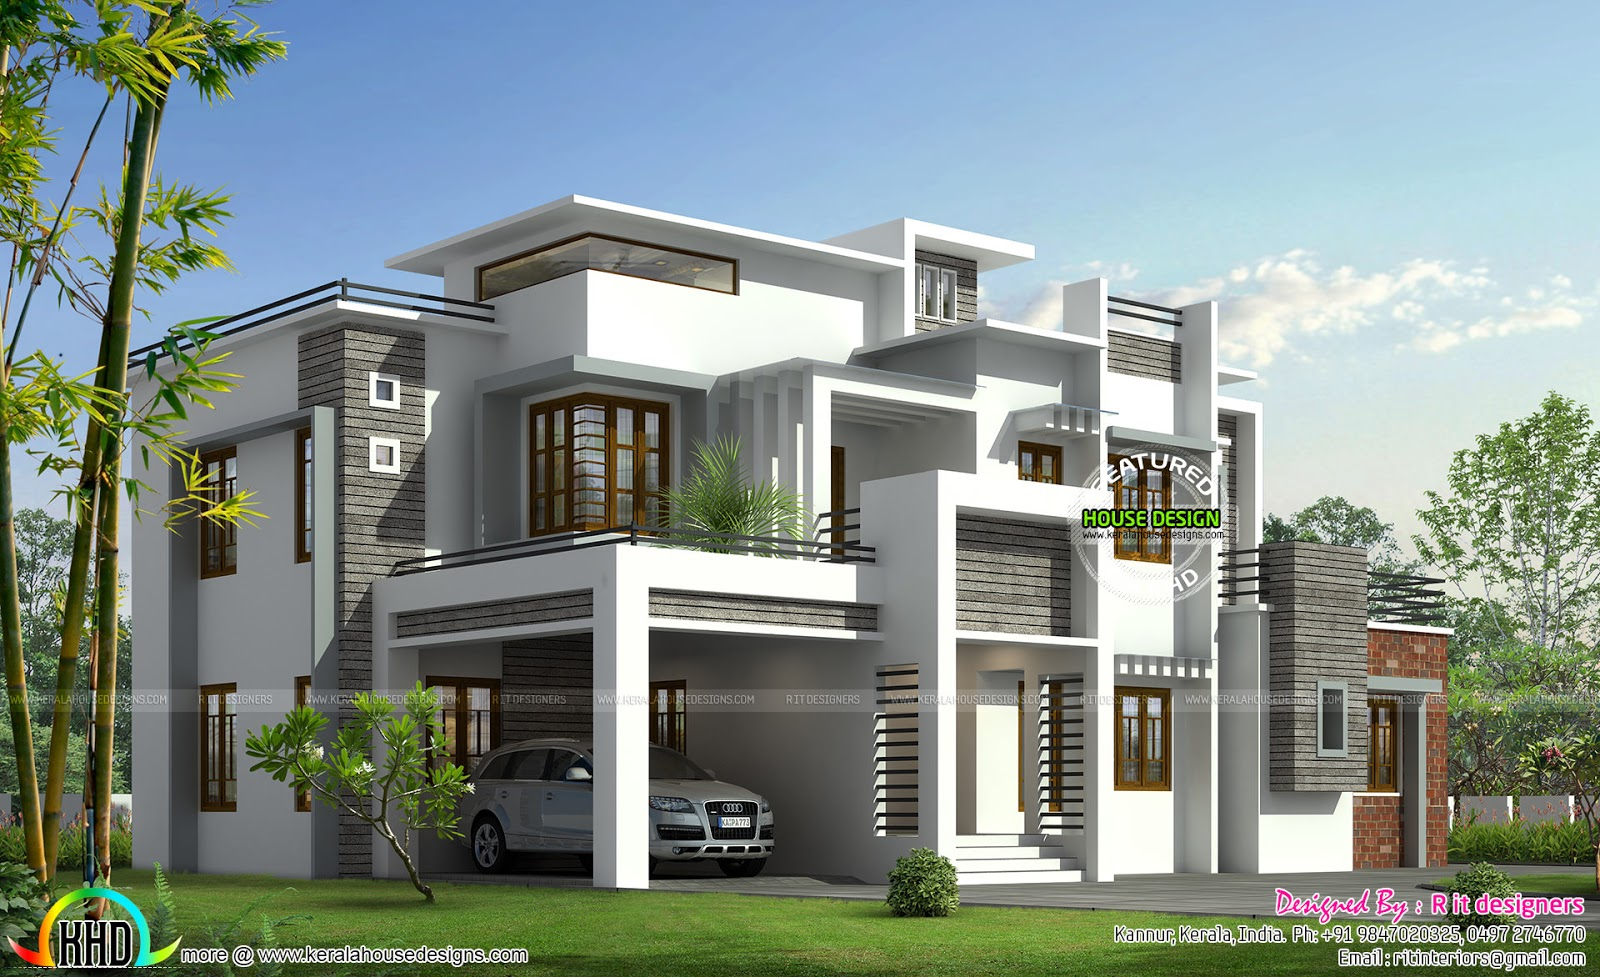 Box model contemporary house kerala home design and for Home floor designs image